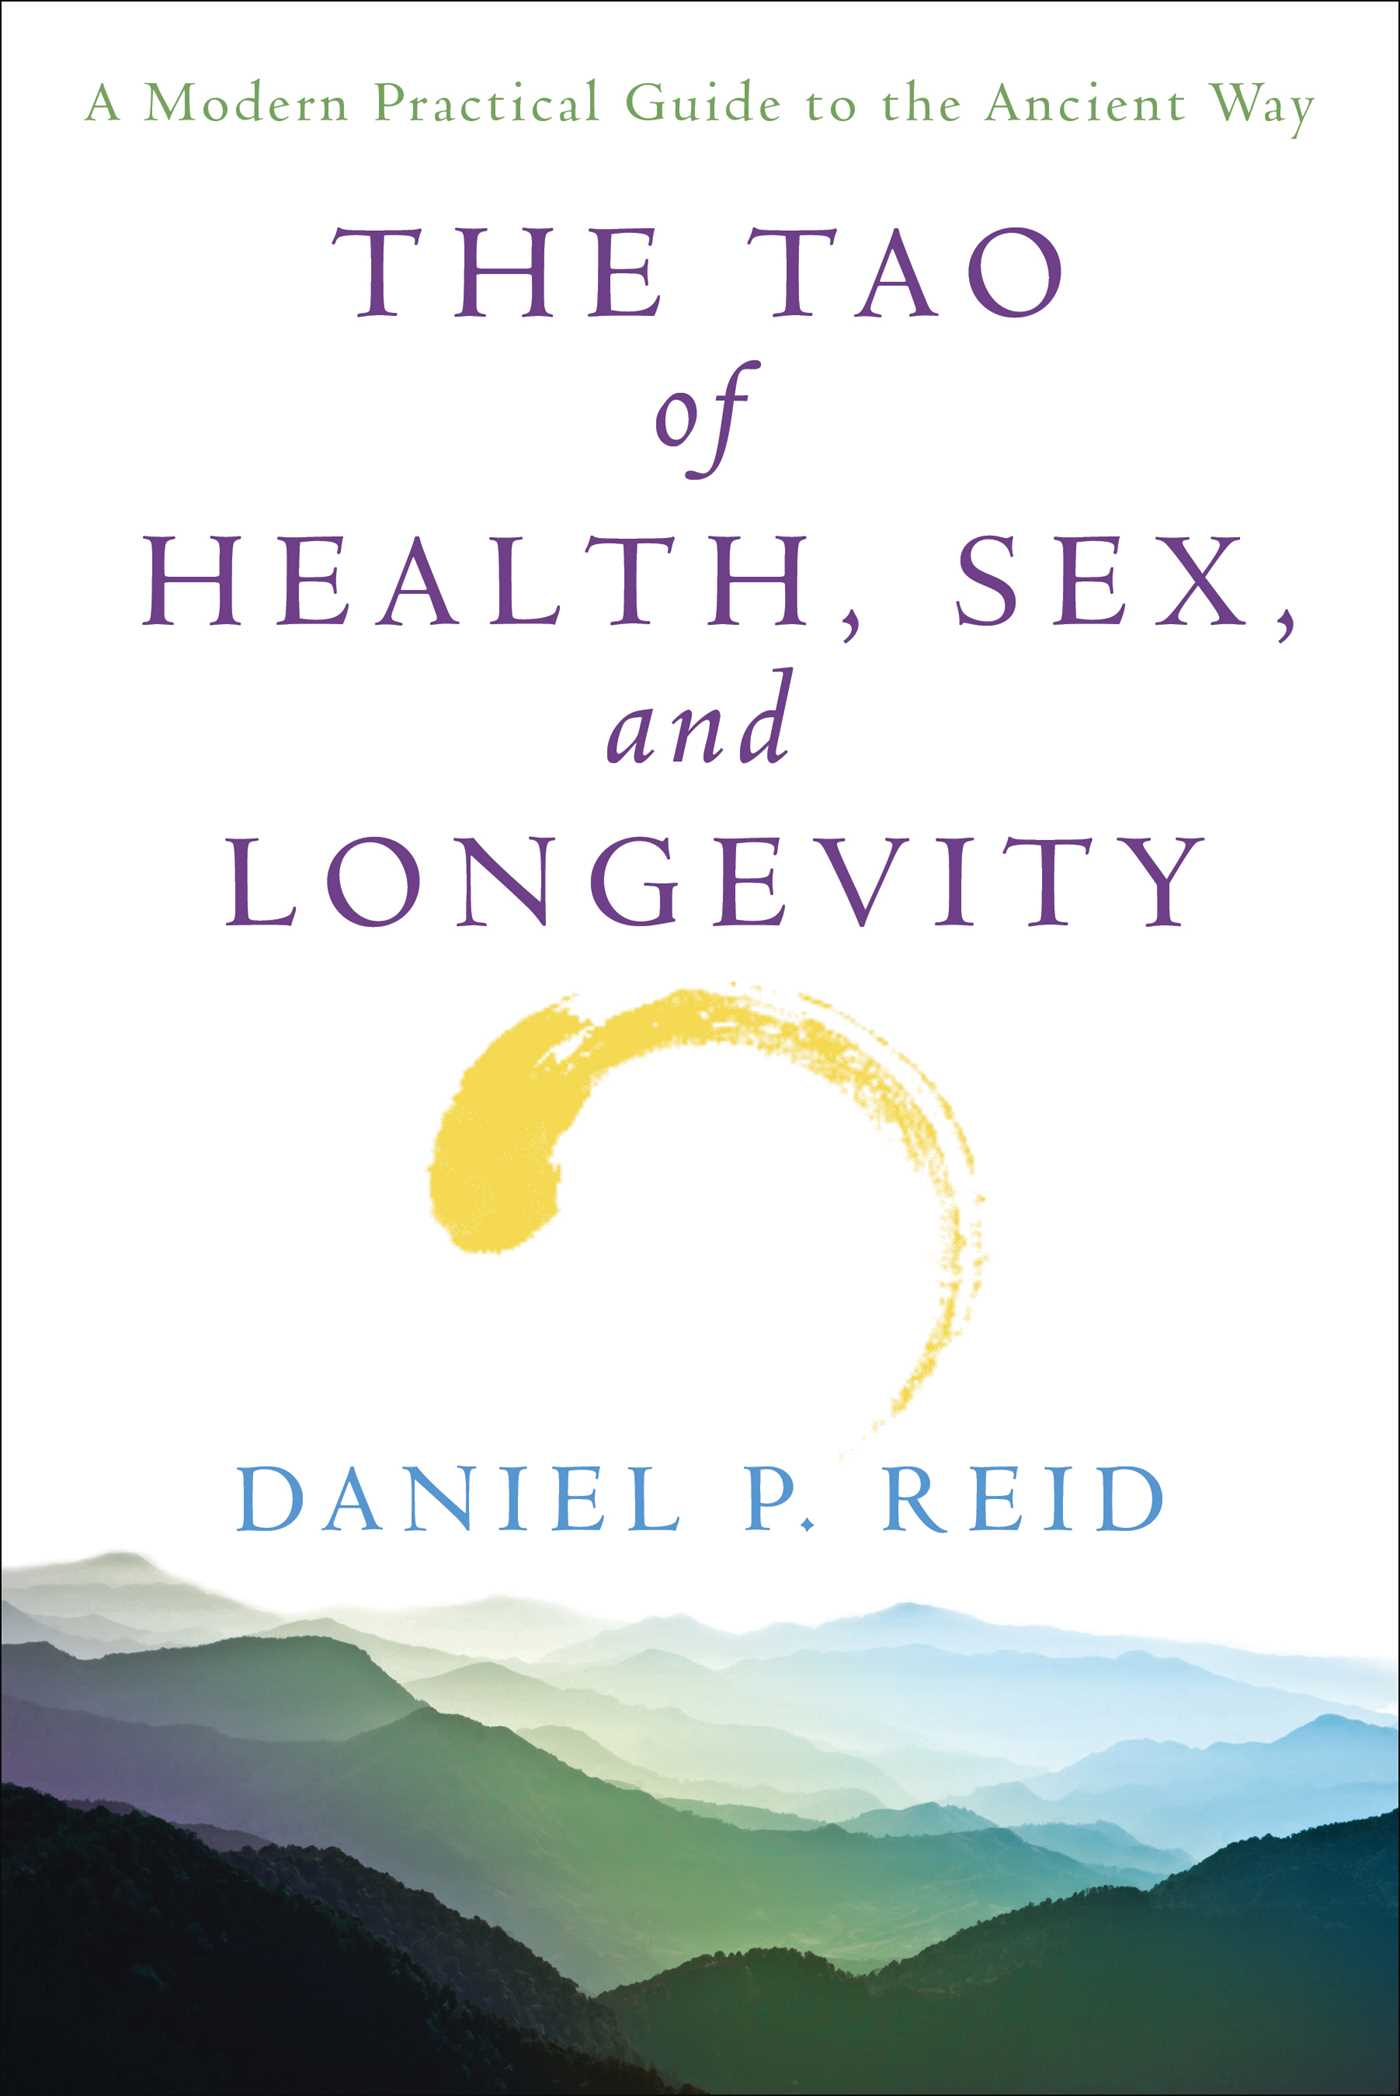 The-tao-of-health-sex-and-longevity-9781439148075_hr